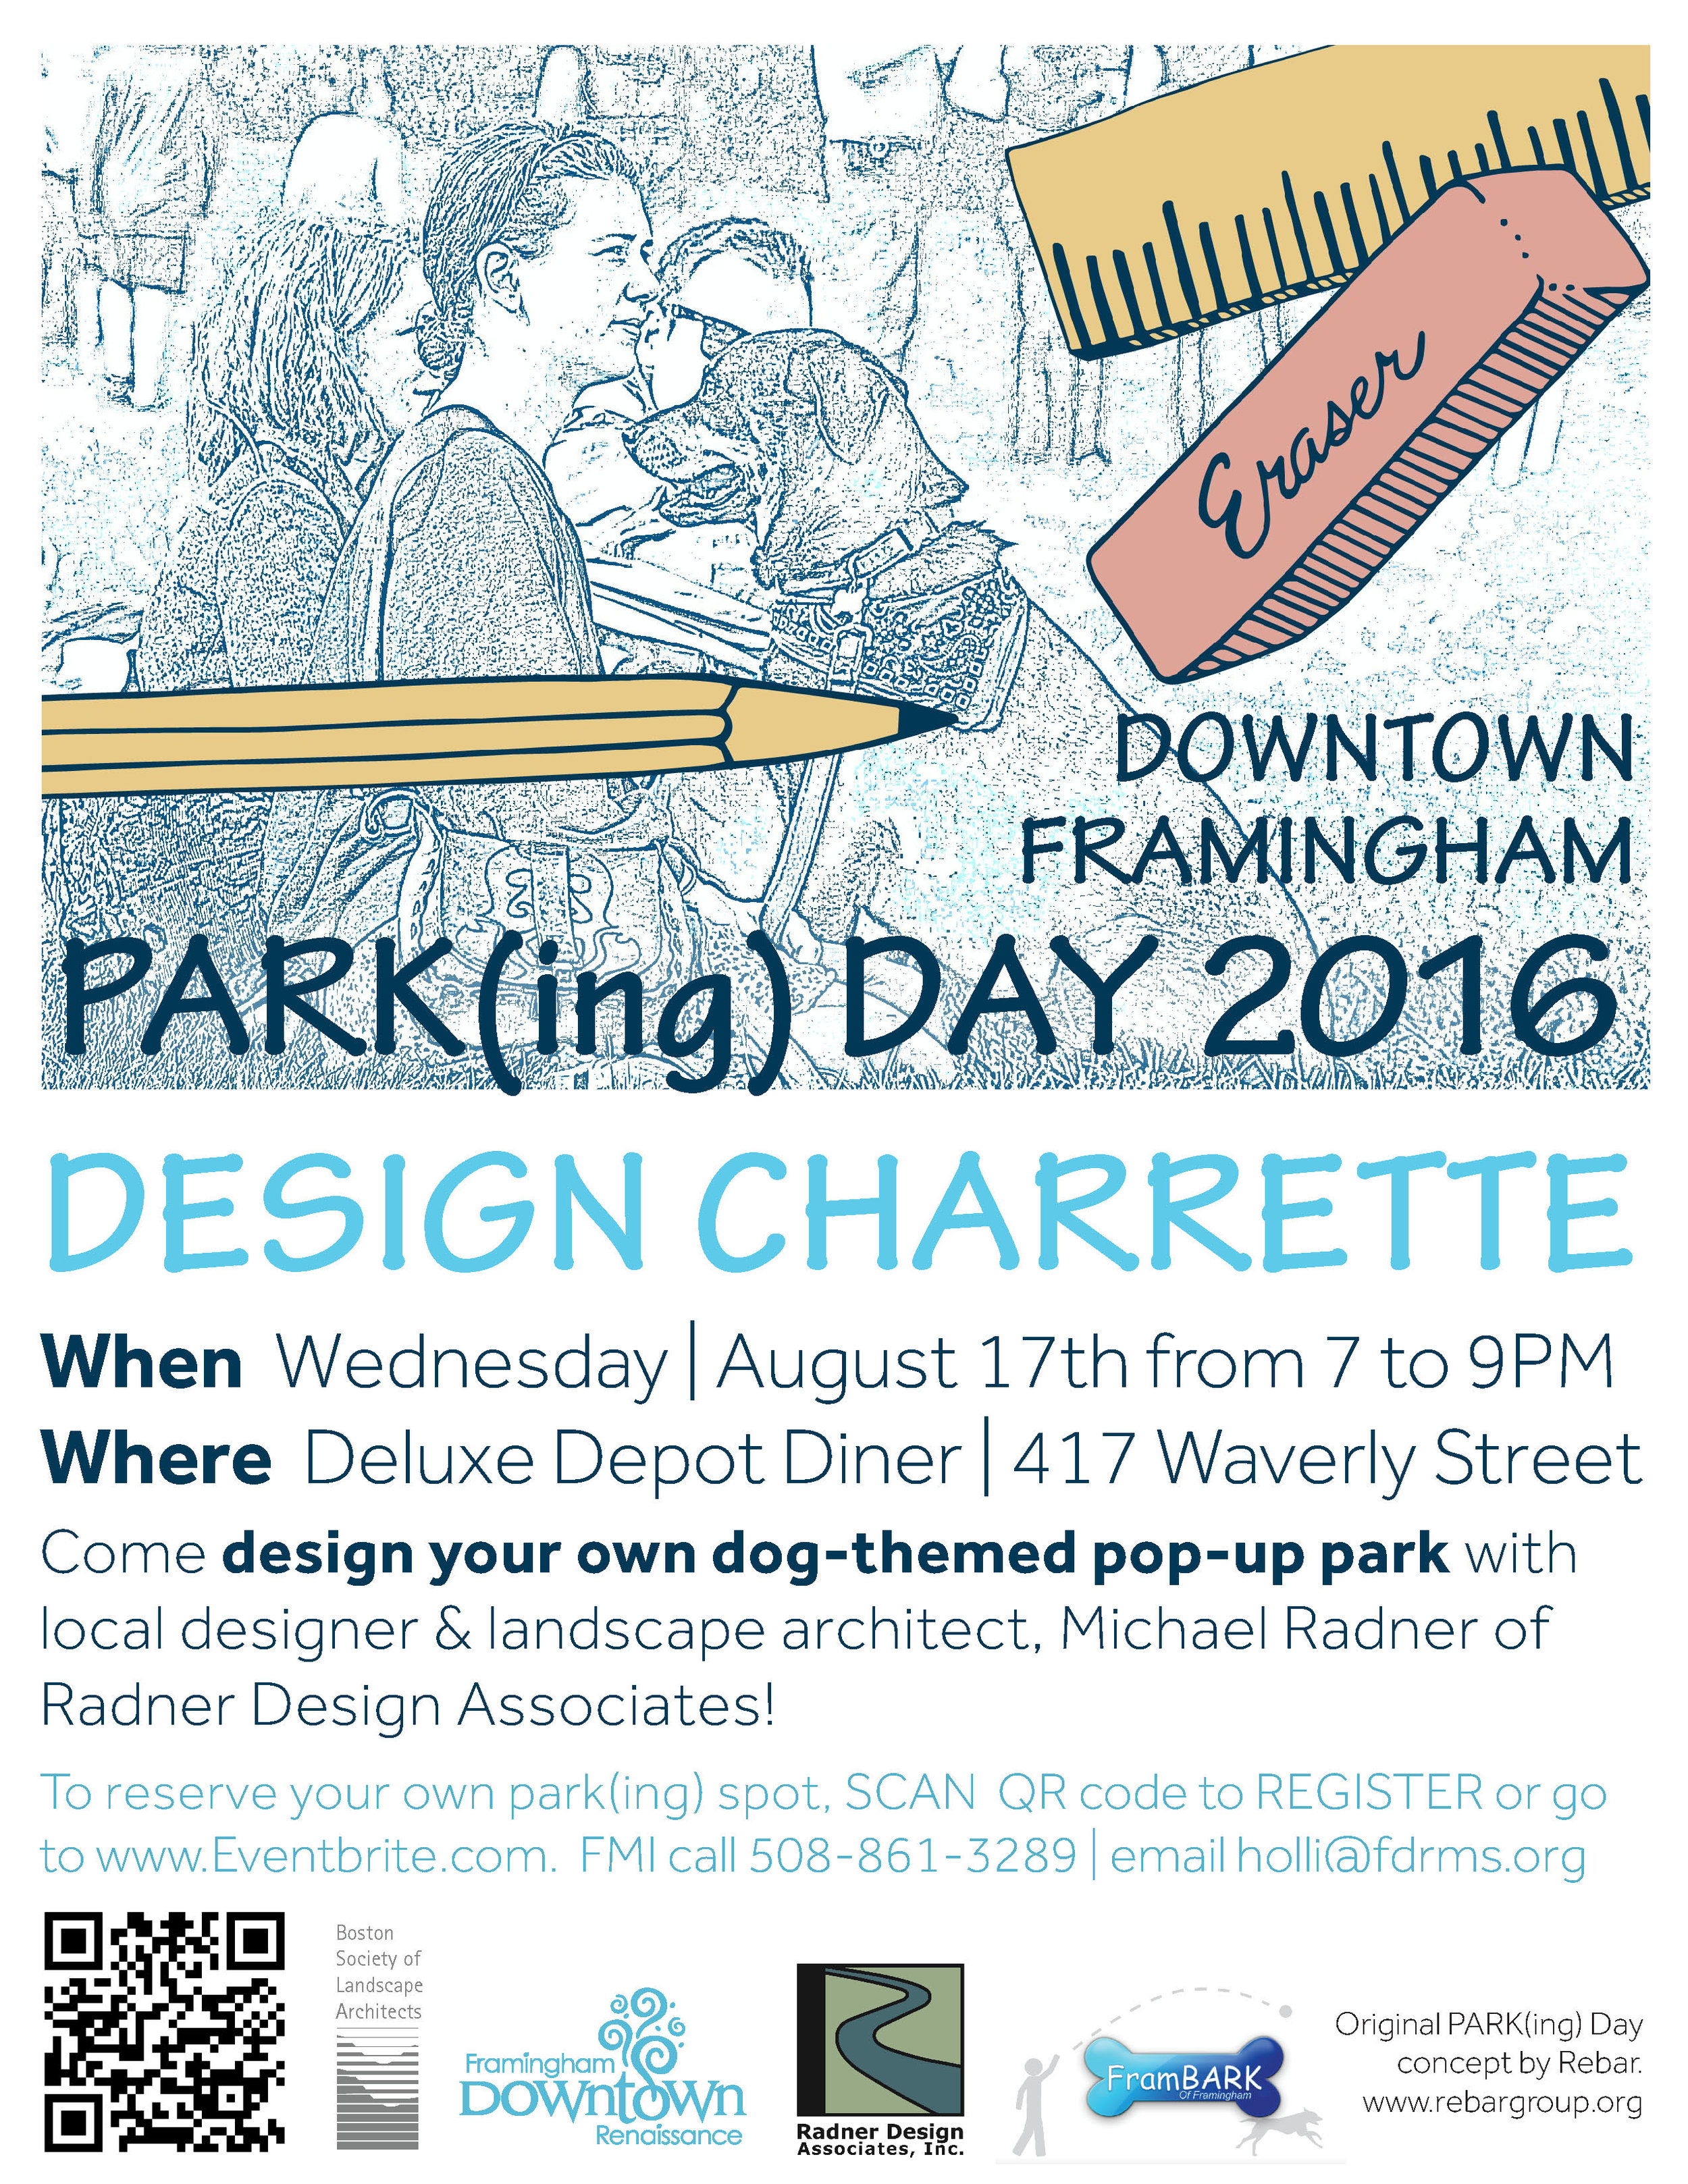 Park(ing) Day Charrette